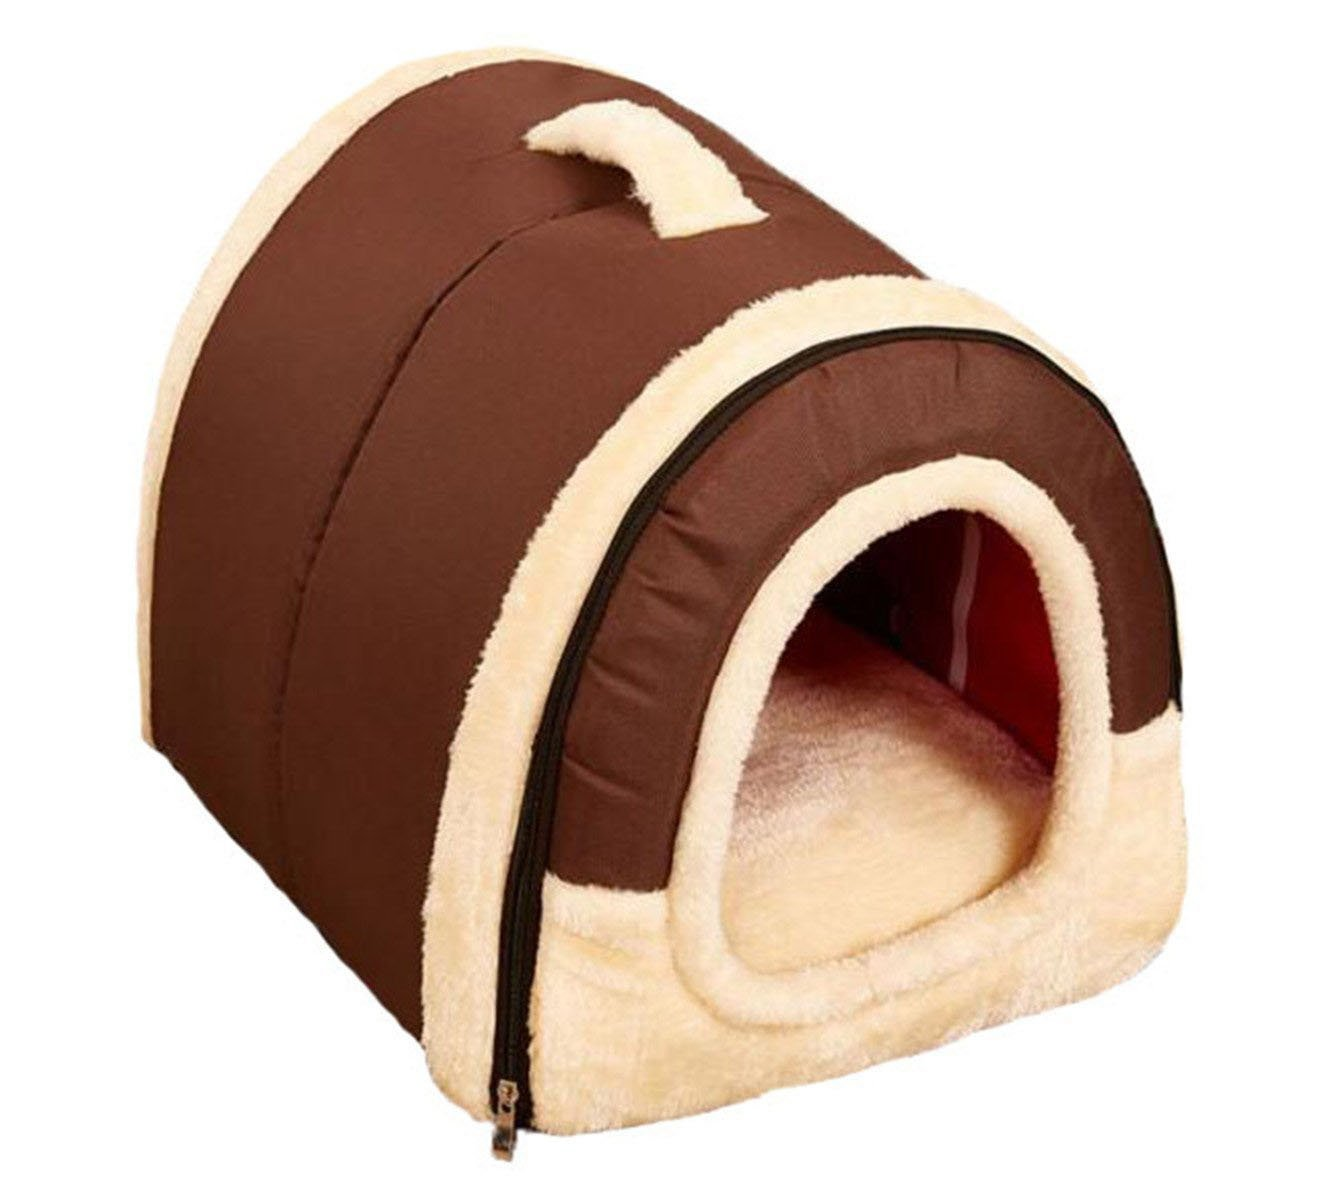 Brown L Brown L Cozy Pet Dog Cat Cave,M&G House Portable Soft Sided Plush Pillowed Indoor Cat Congreenible Pet House Slip Sofa Puppy Bed L